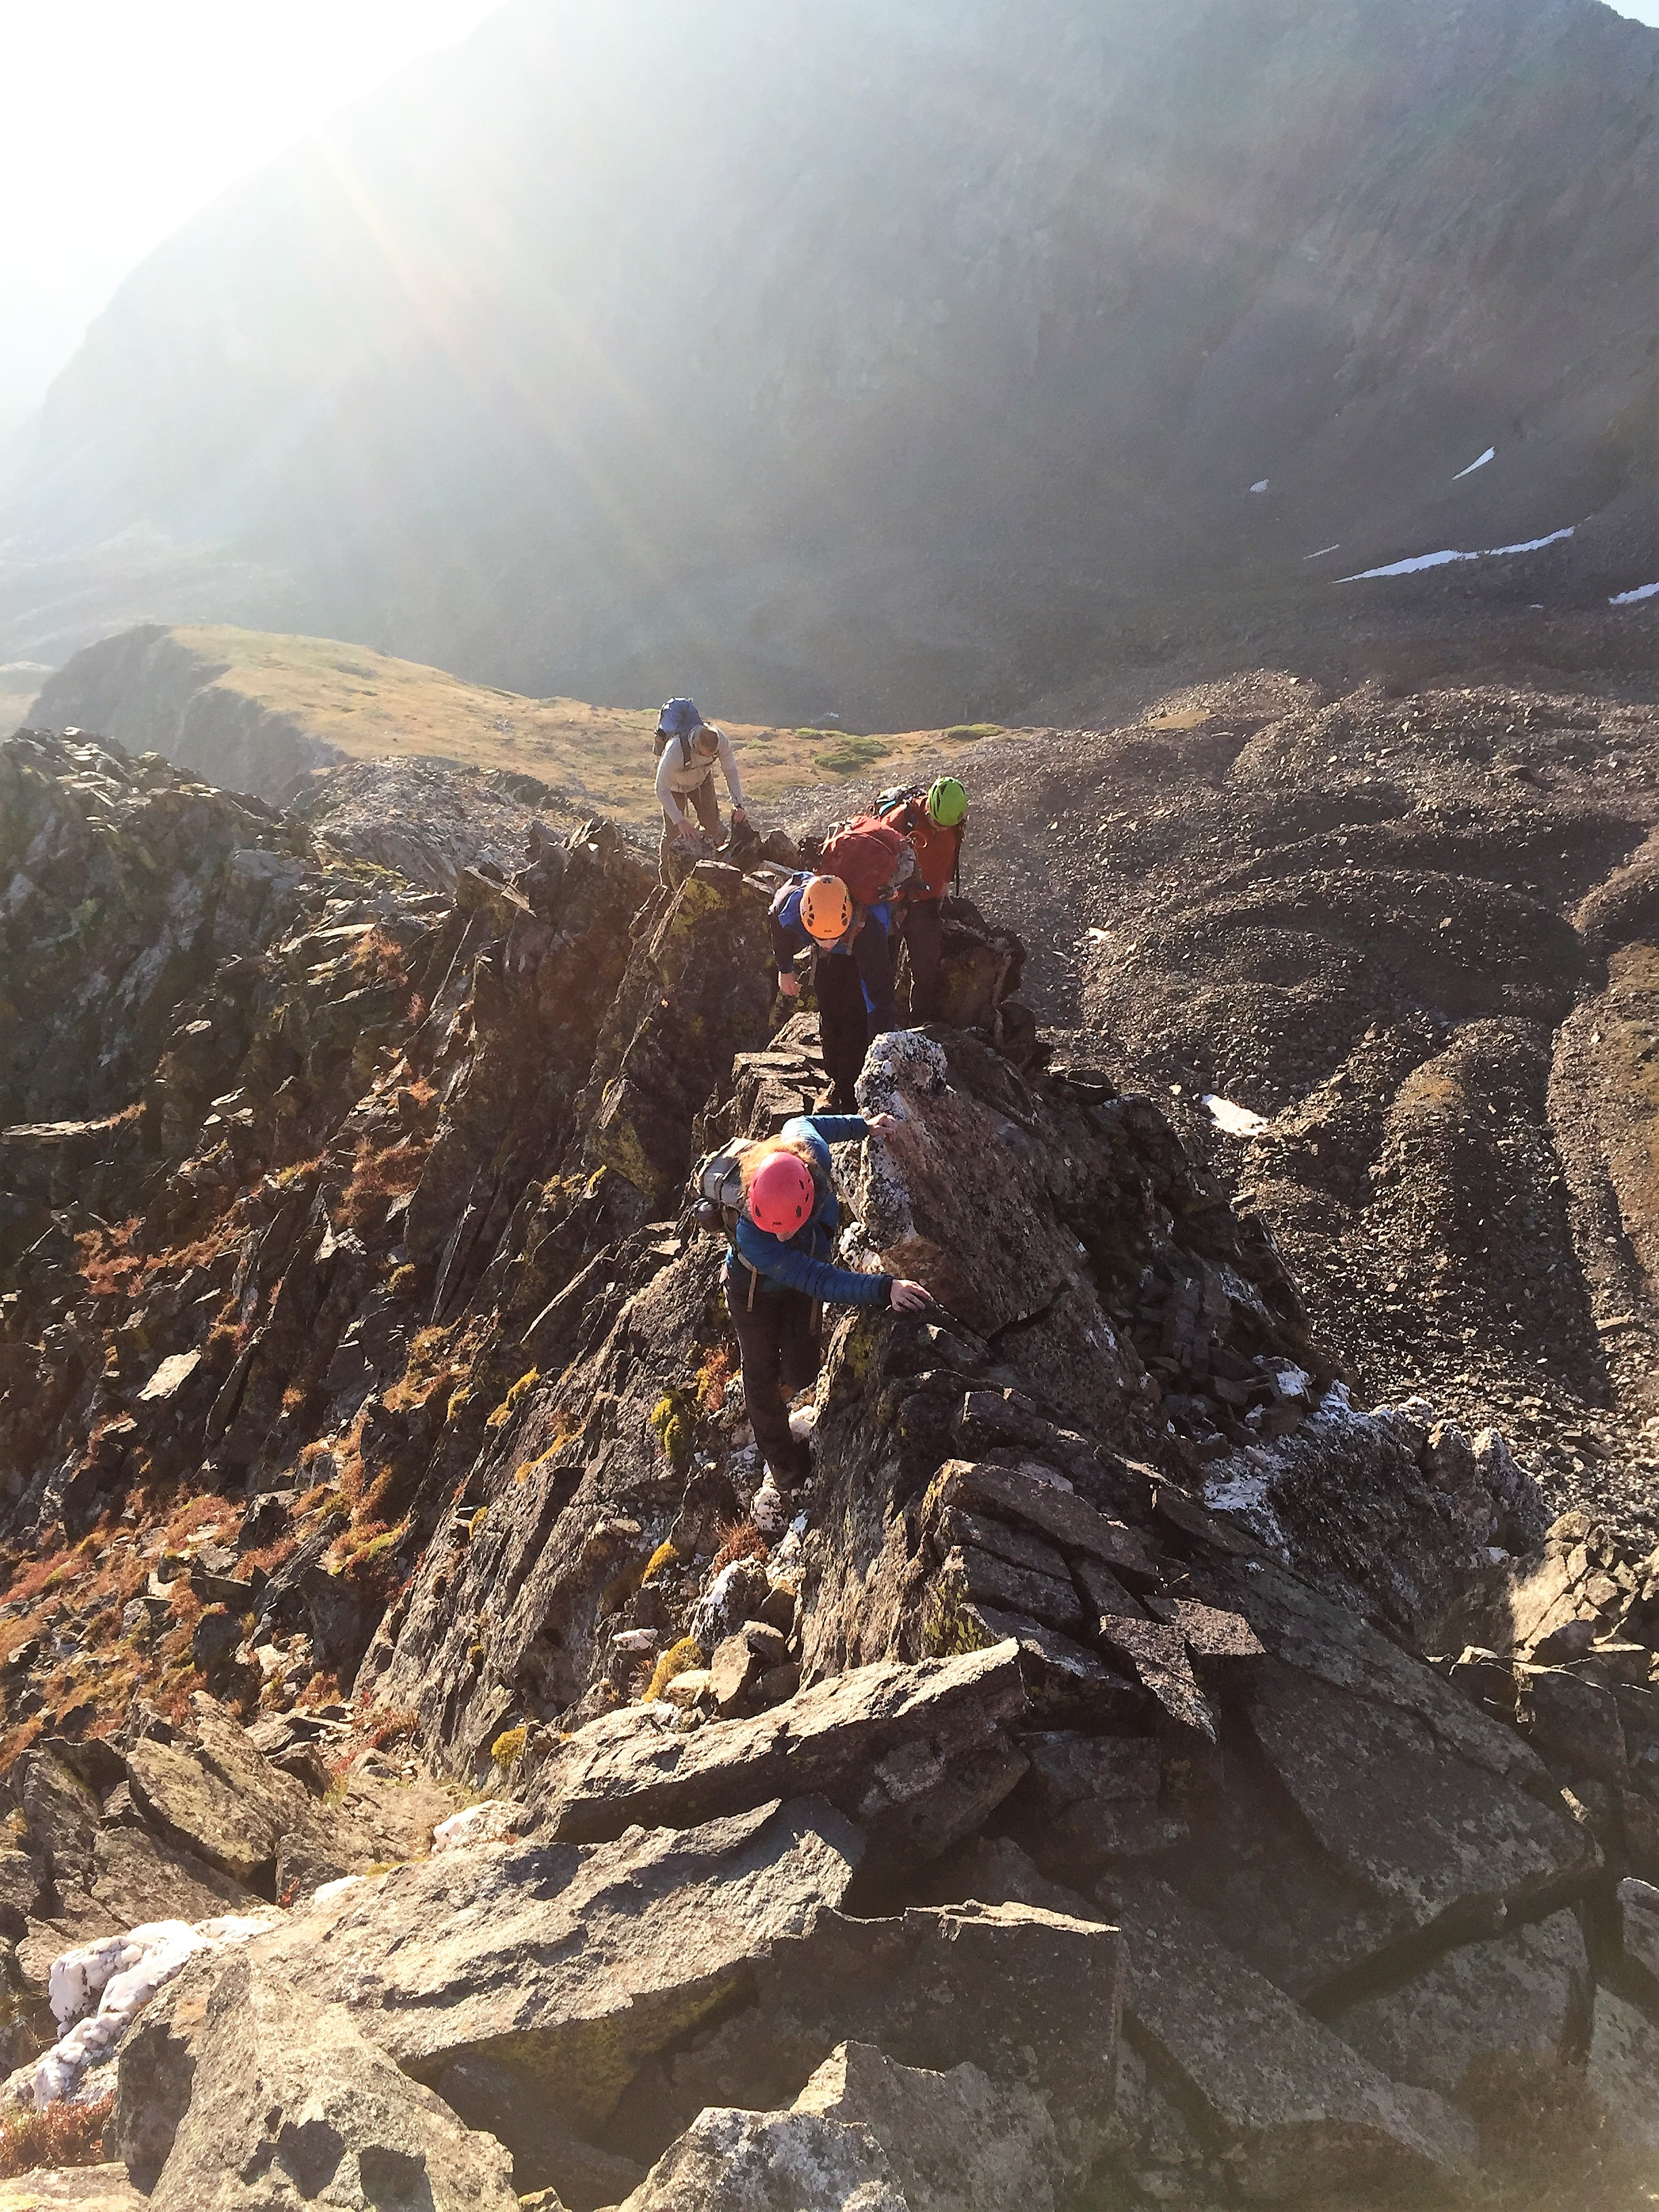 A good introduction to scrambling on an exposed ridge. Photo: Jim Hasse